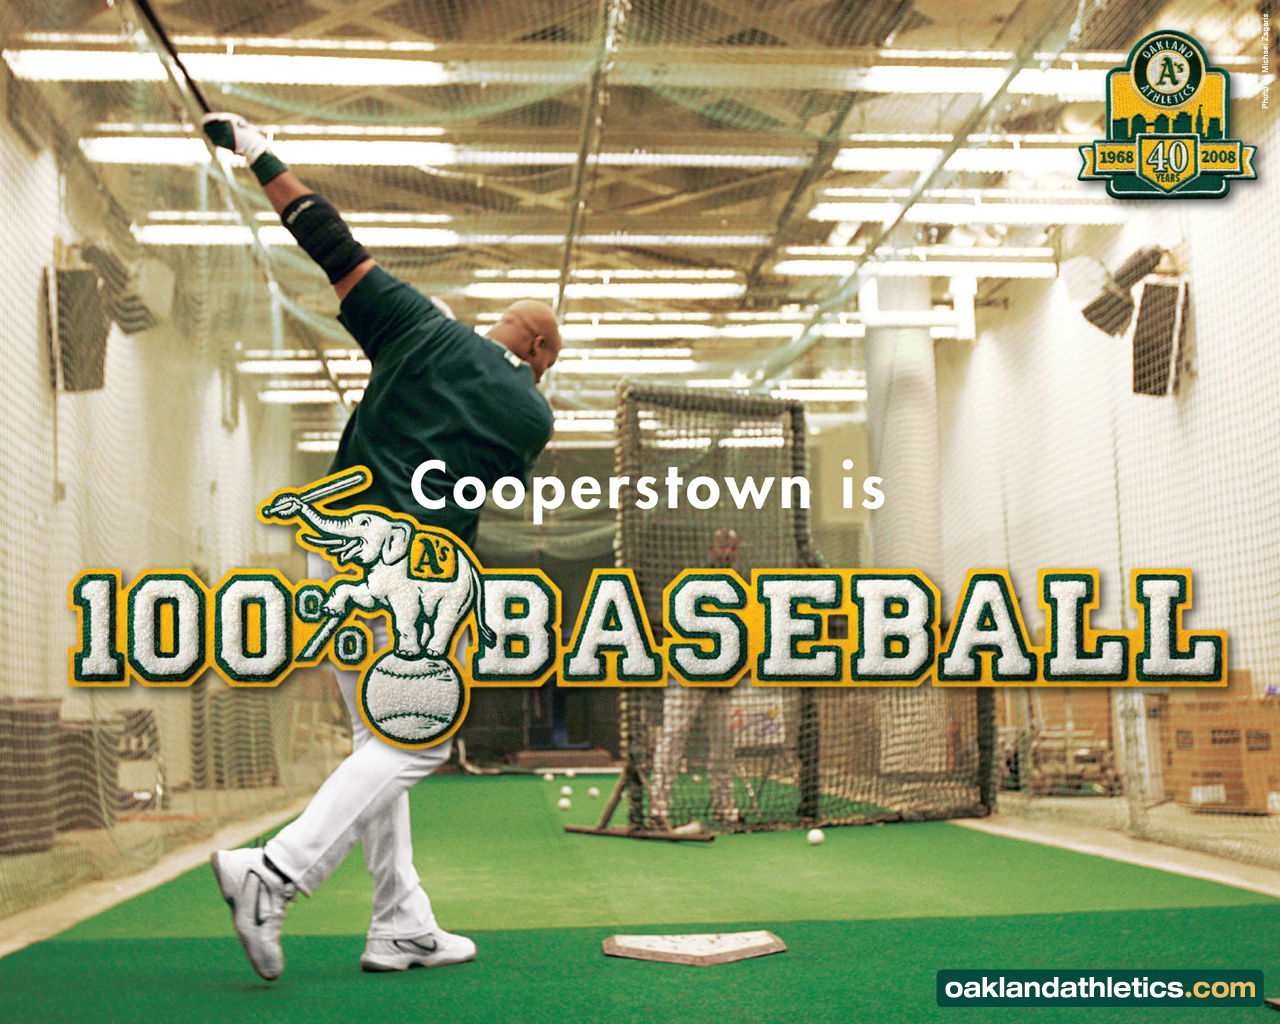 Download Oakland Athletics wallpaper Oakland Athletics Cooperstown 1280x1024